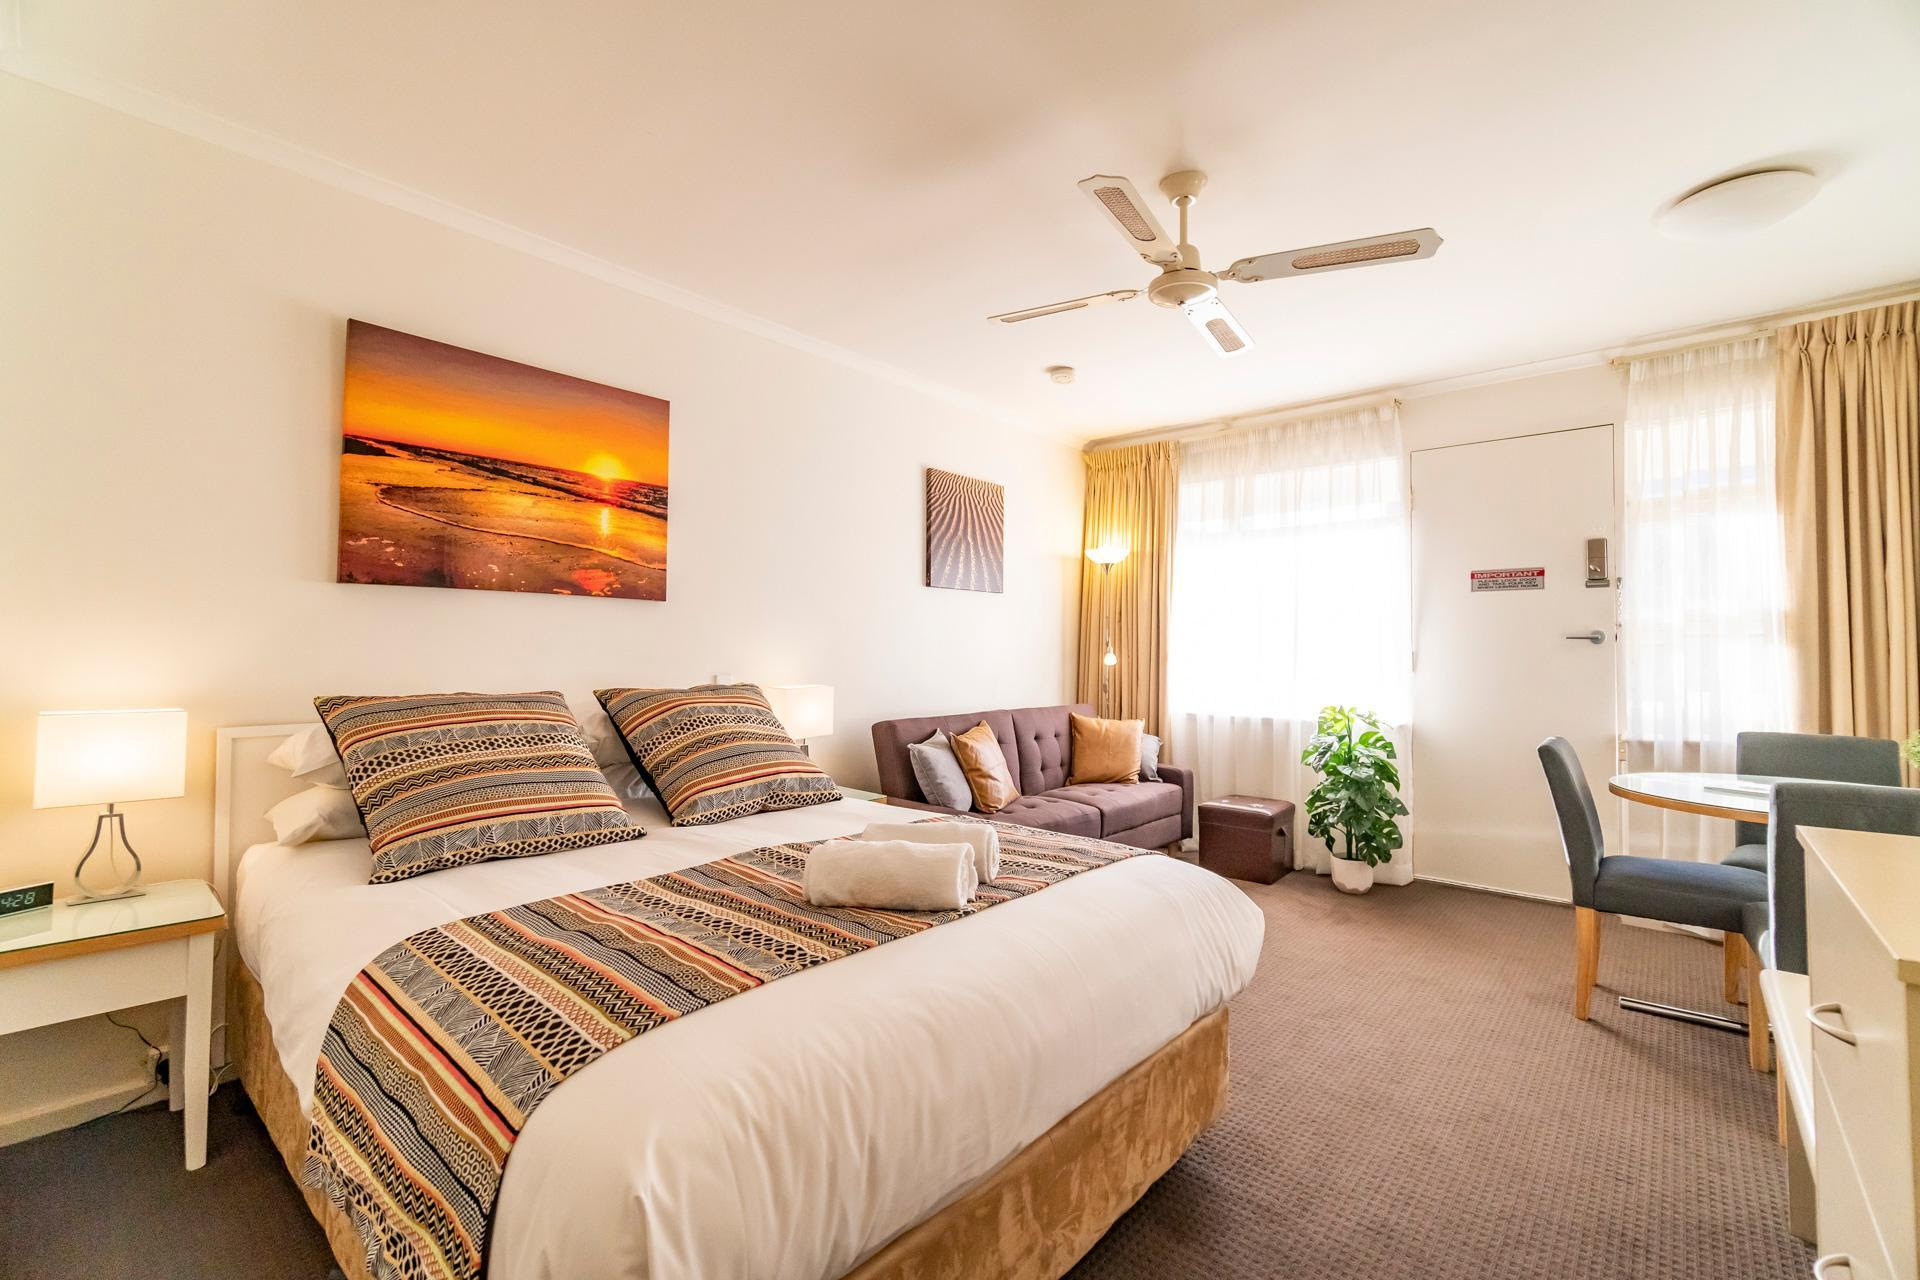 Promo Ocean Sunset' Glenelg Central Studio Free Parking